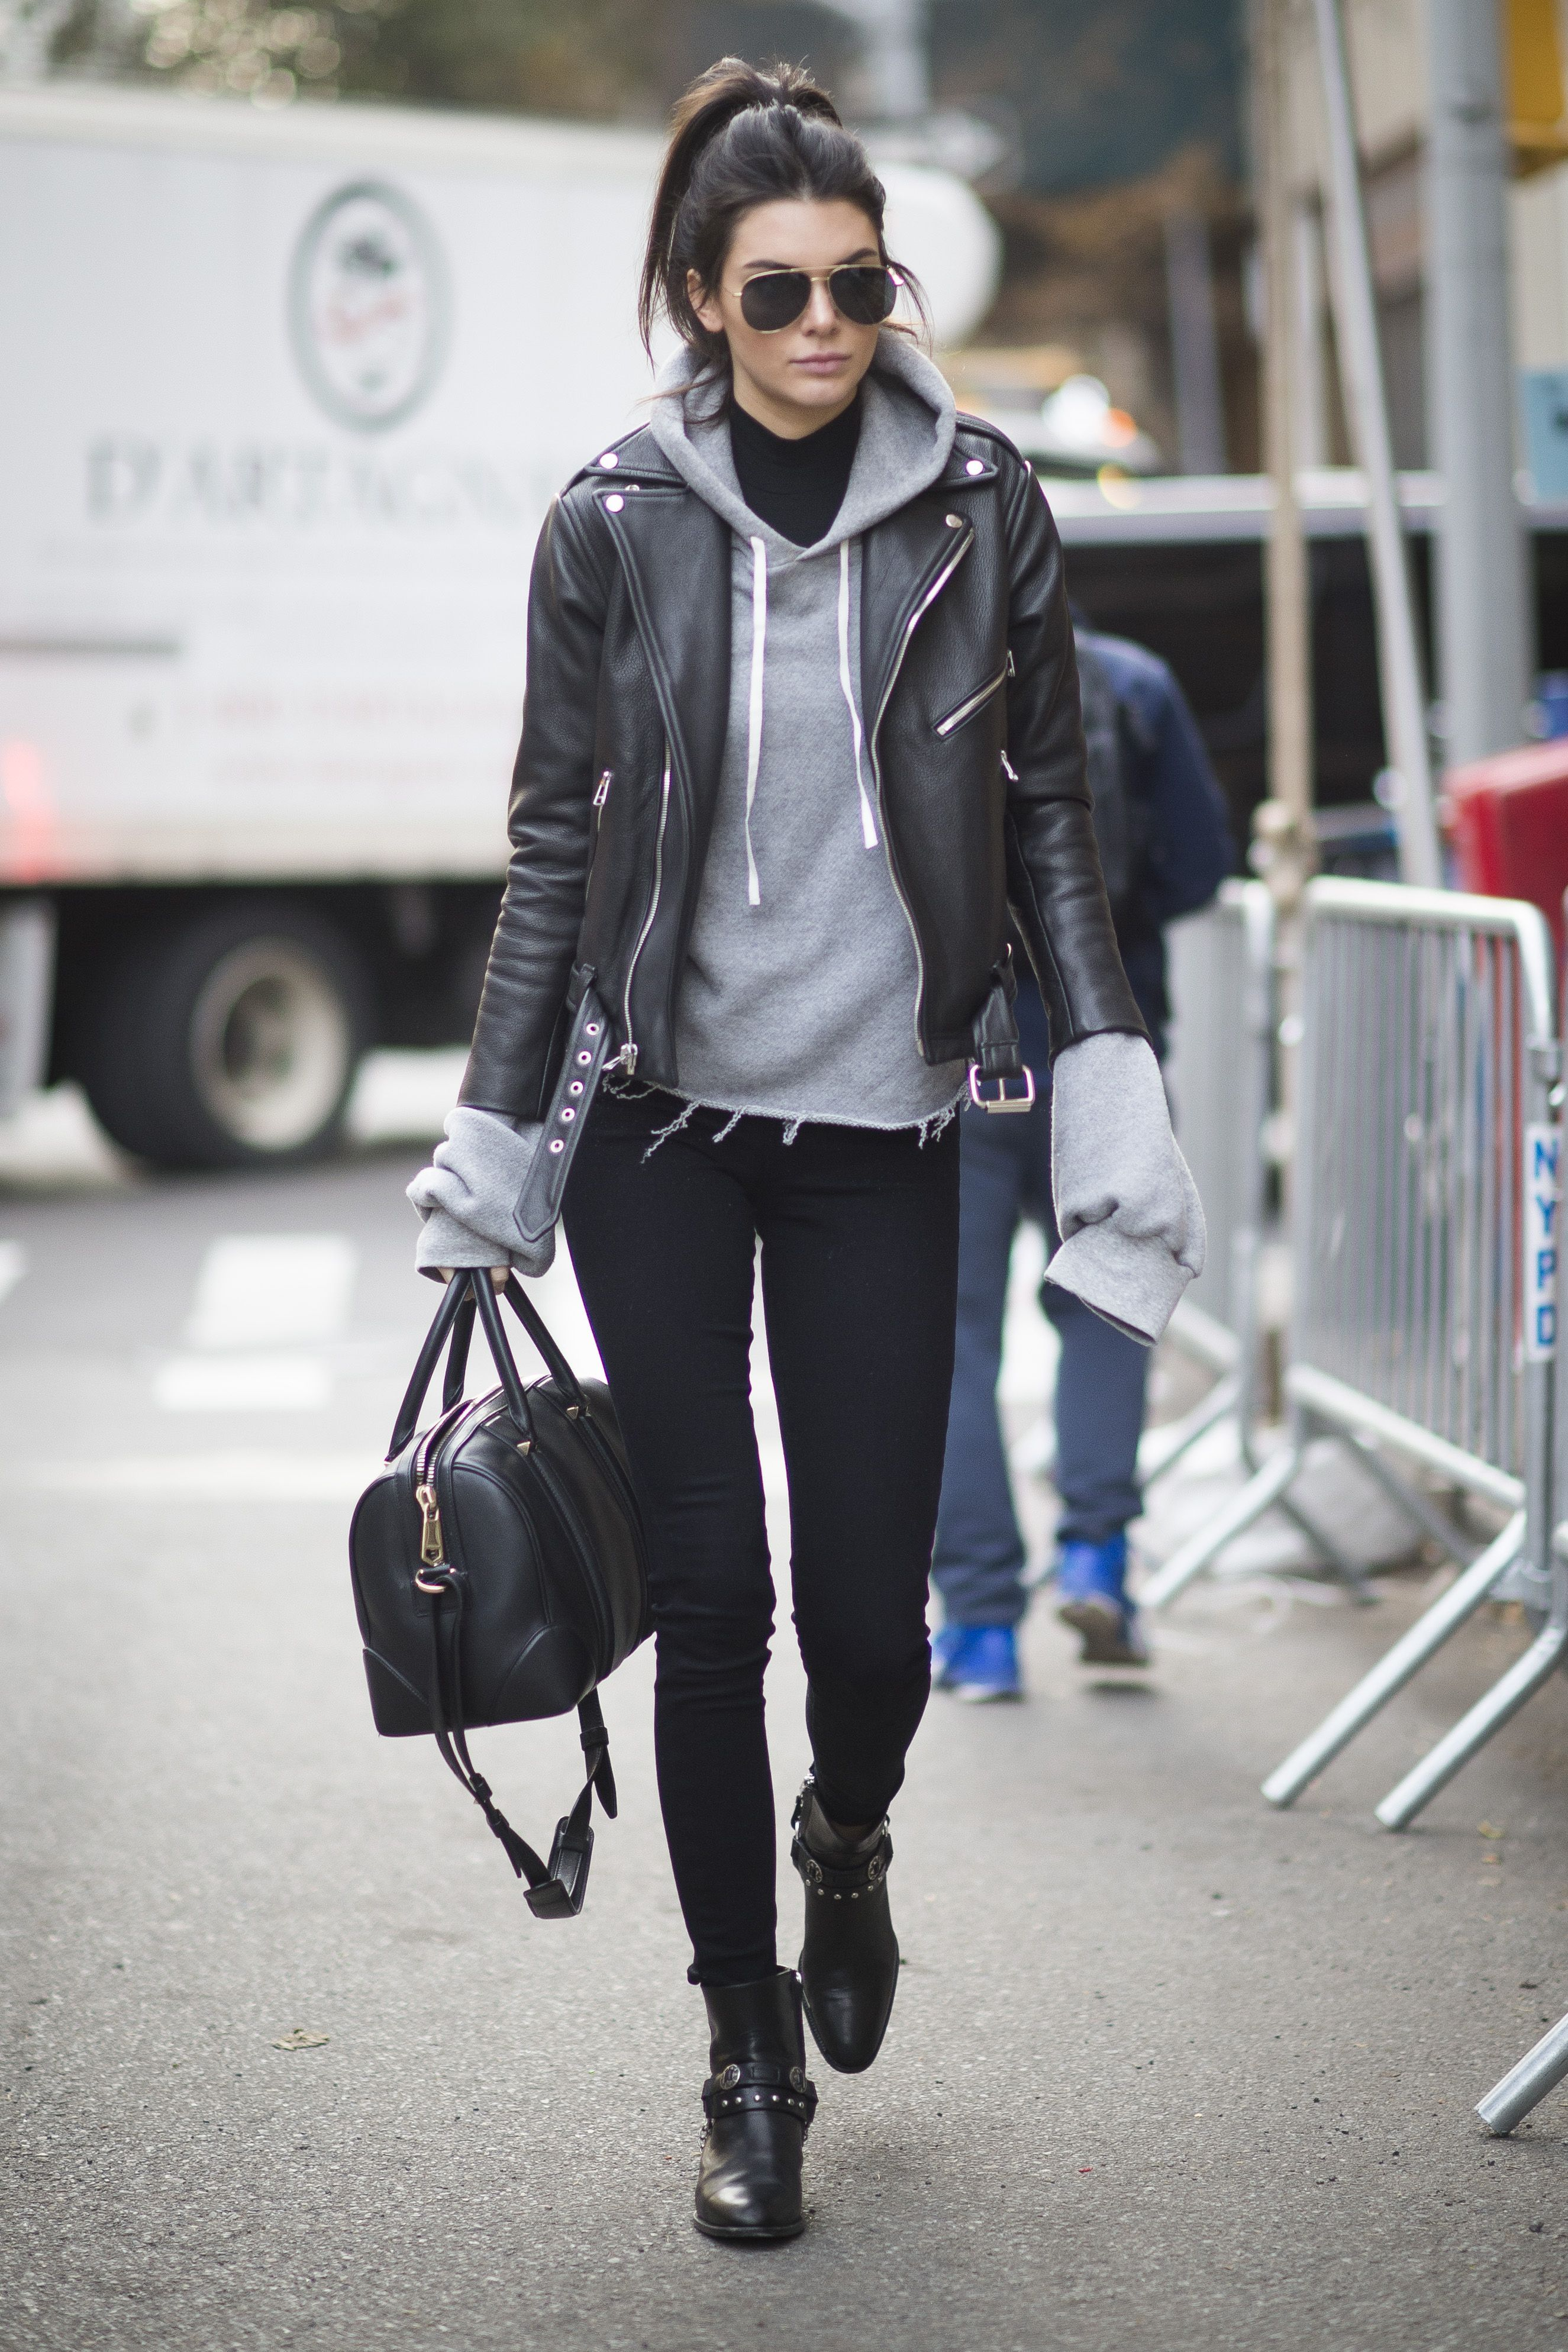 0320f761fac Kendall Jenner arrived at the show in an edgy yet casual street style look  that included a frayed gray swea.